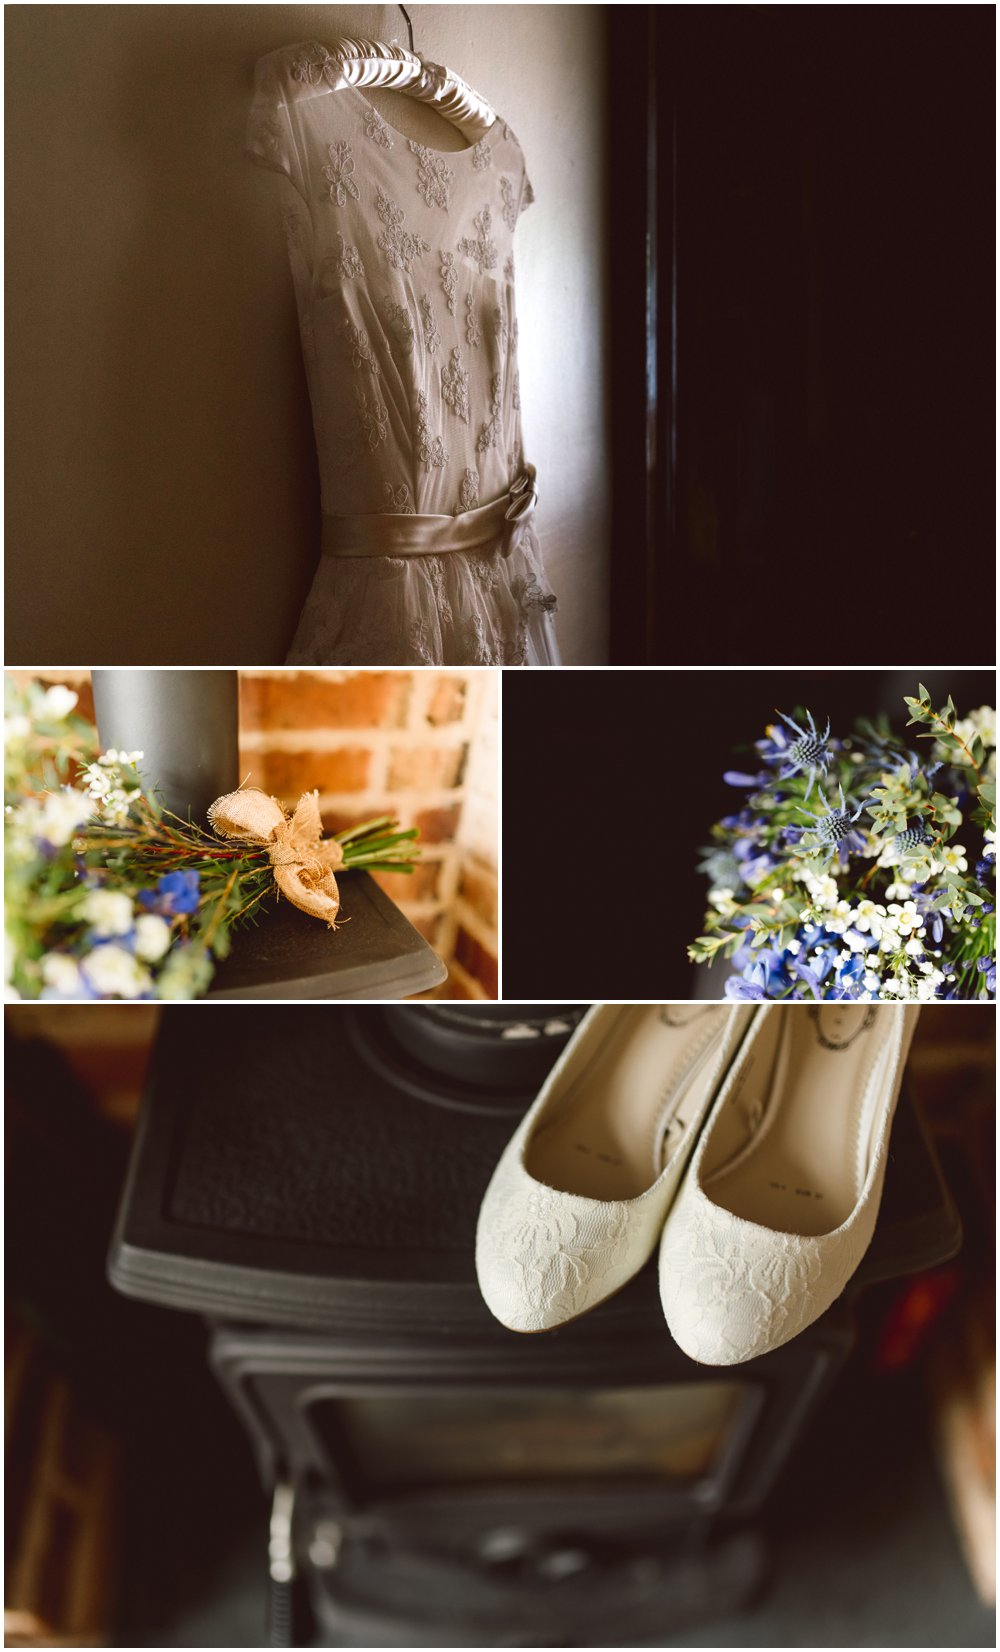 Chris and Beccy Cliff Lakes, Kingsbury, Tamworth Wedding Photography, country theme with wild flowers, VW beetle and a trip on a speedboat by Lisa Carpenter Photography, Sutton Coldfield and Birmikngham based wedding photographer